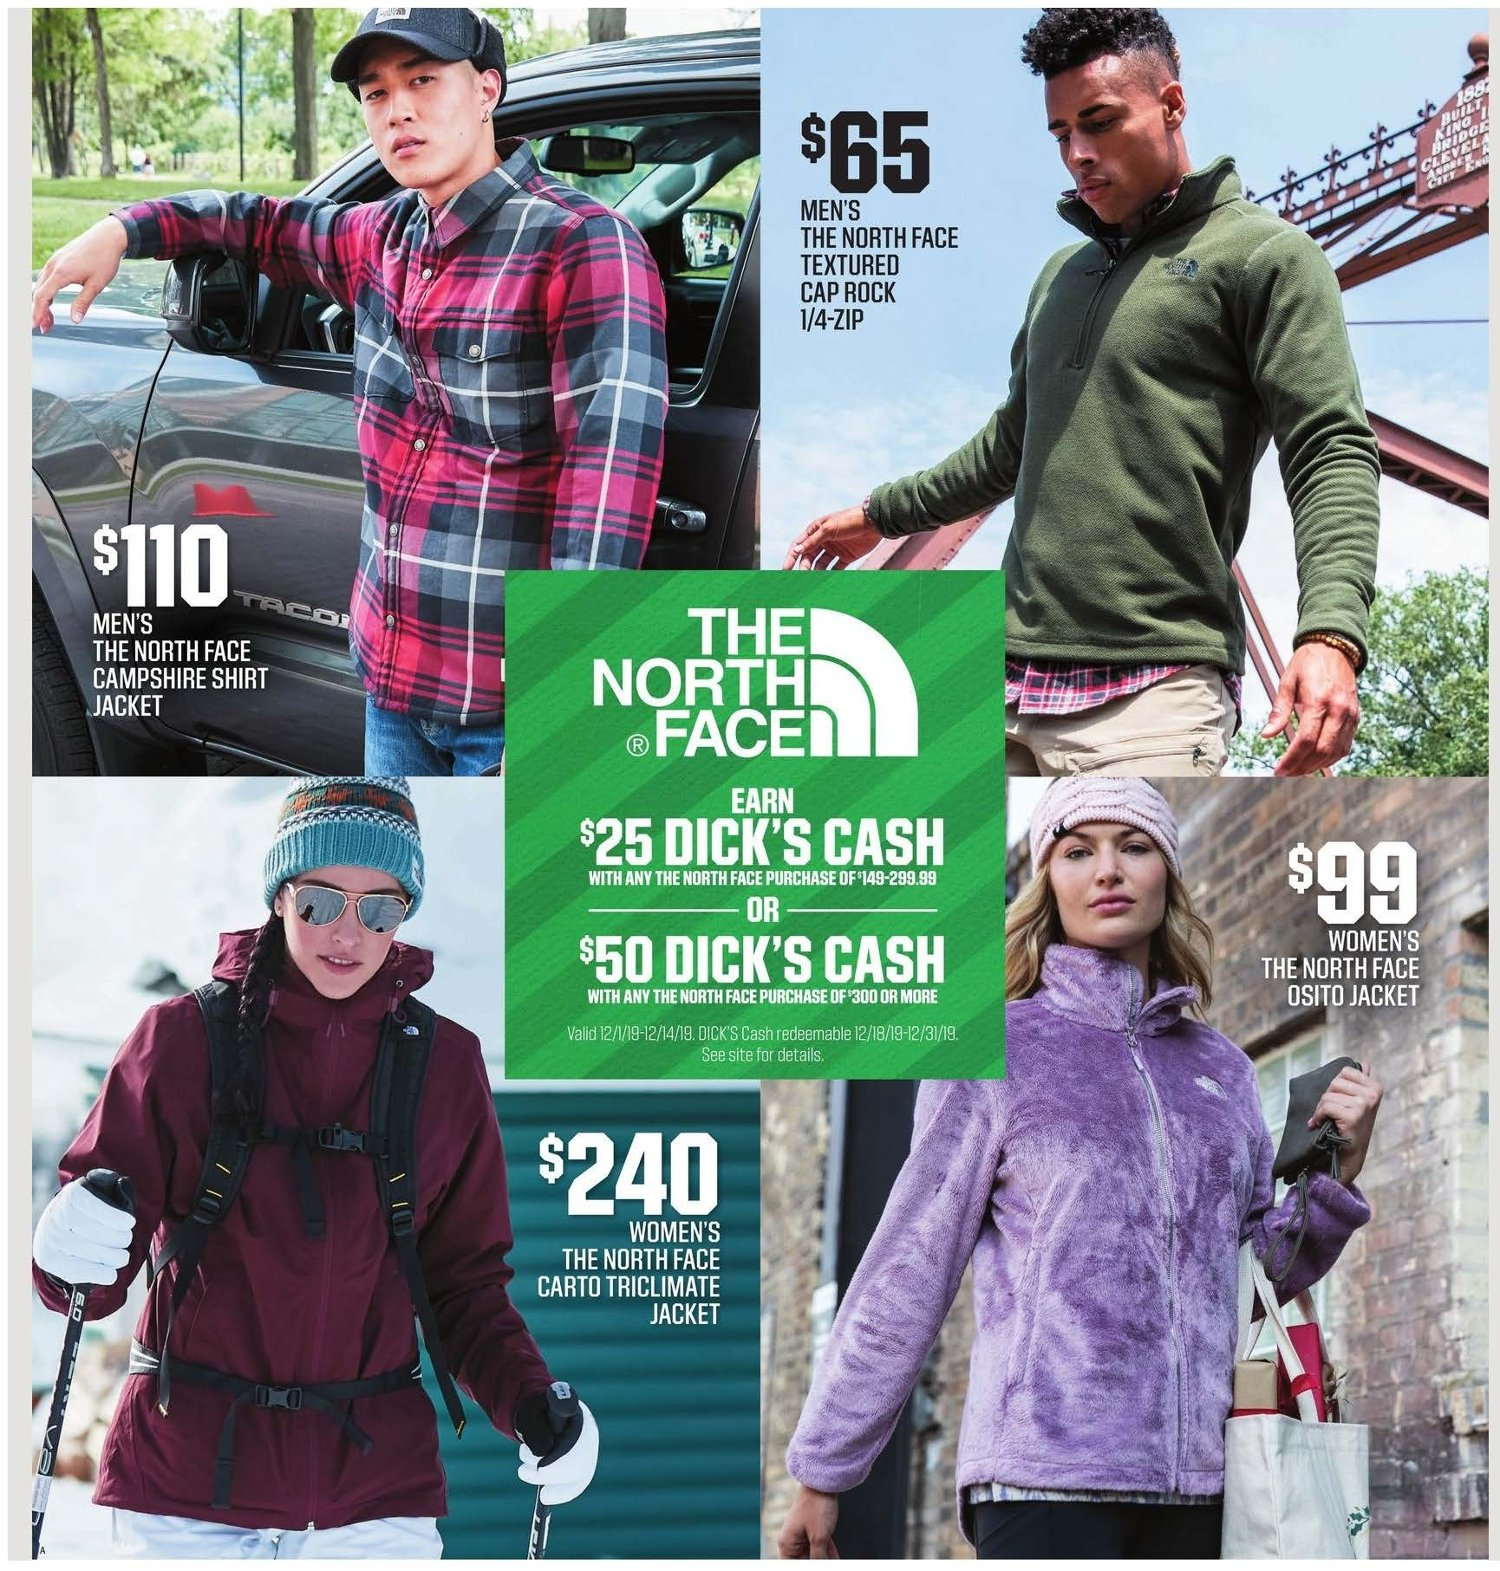 Dick's Sporting Goods Cyber Monday 2019 Page 7